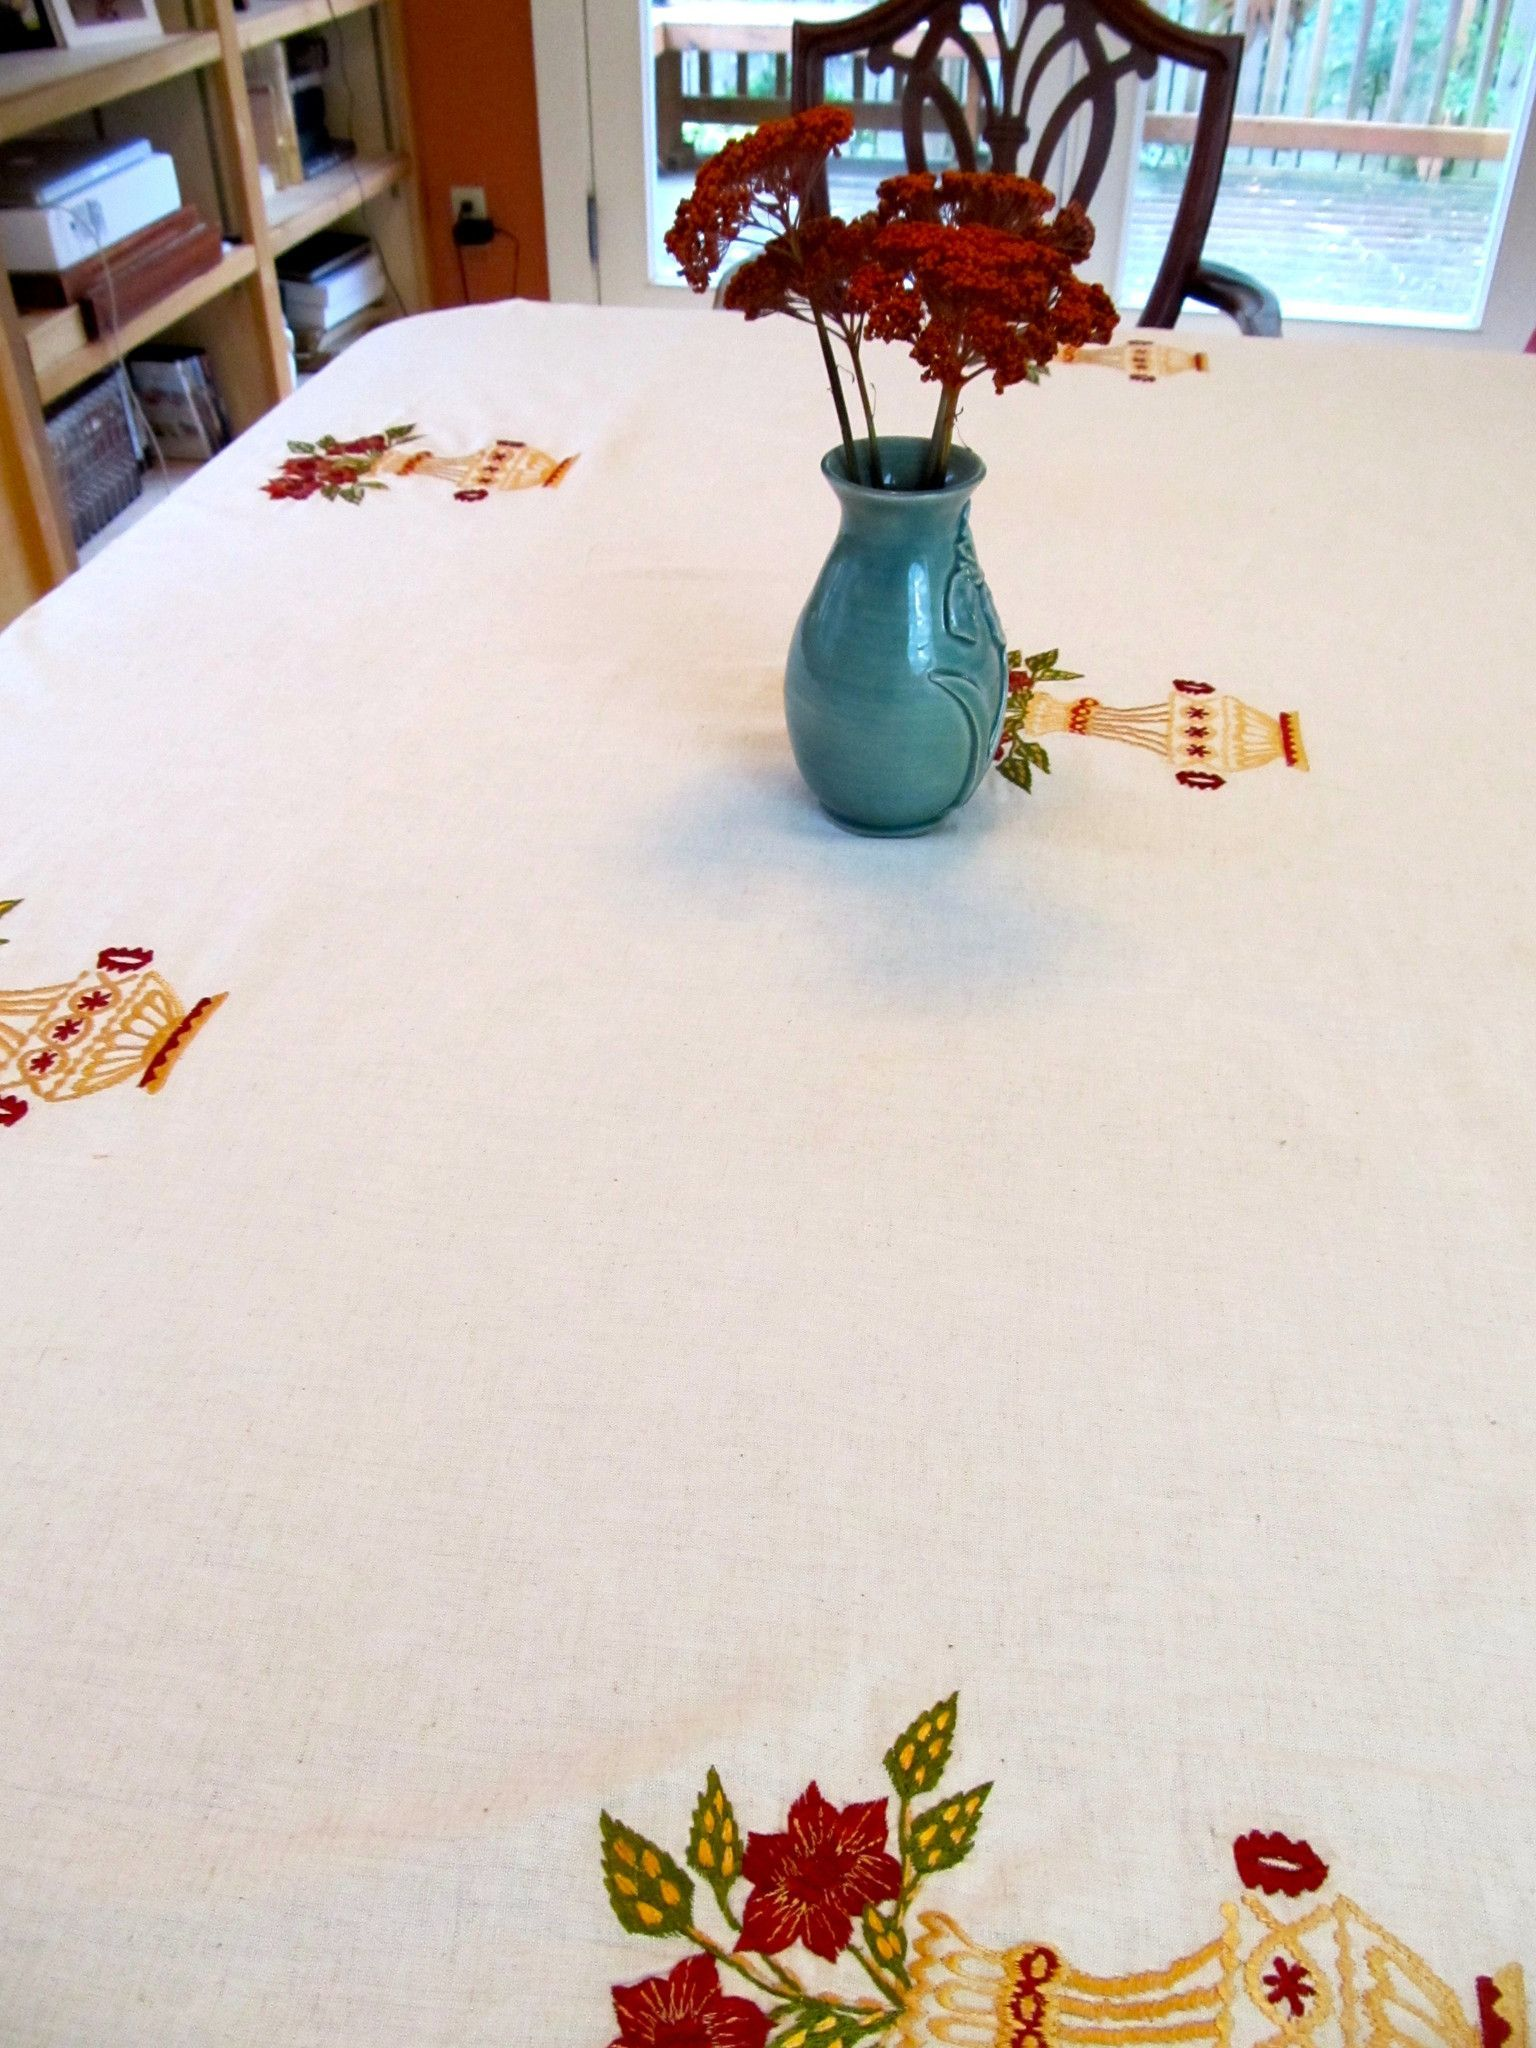 Table Cloth 54 Light Weight Cotton Linen Table Cloth With Embroidered Flowers In A Vase Embroidered Tablecloth Table Cloth Linen Tablecloth